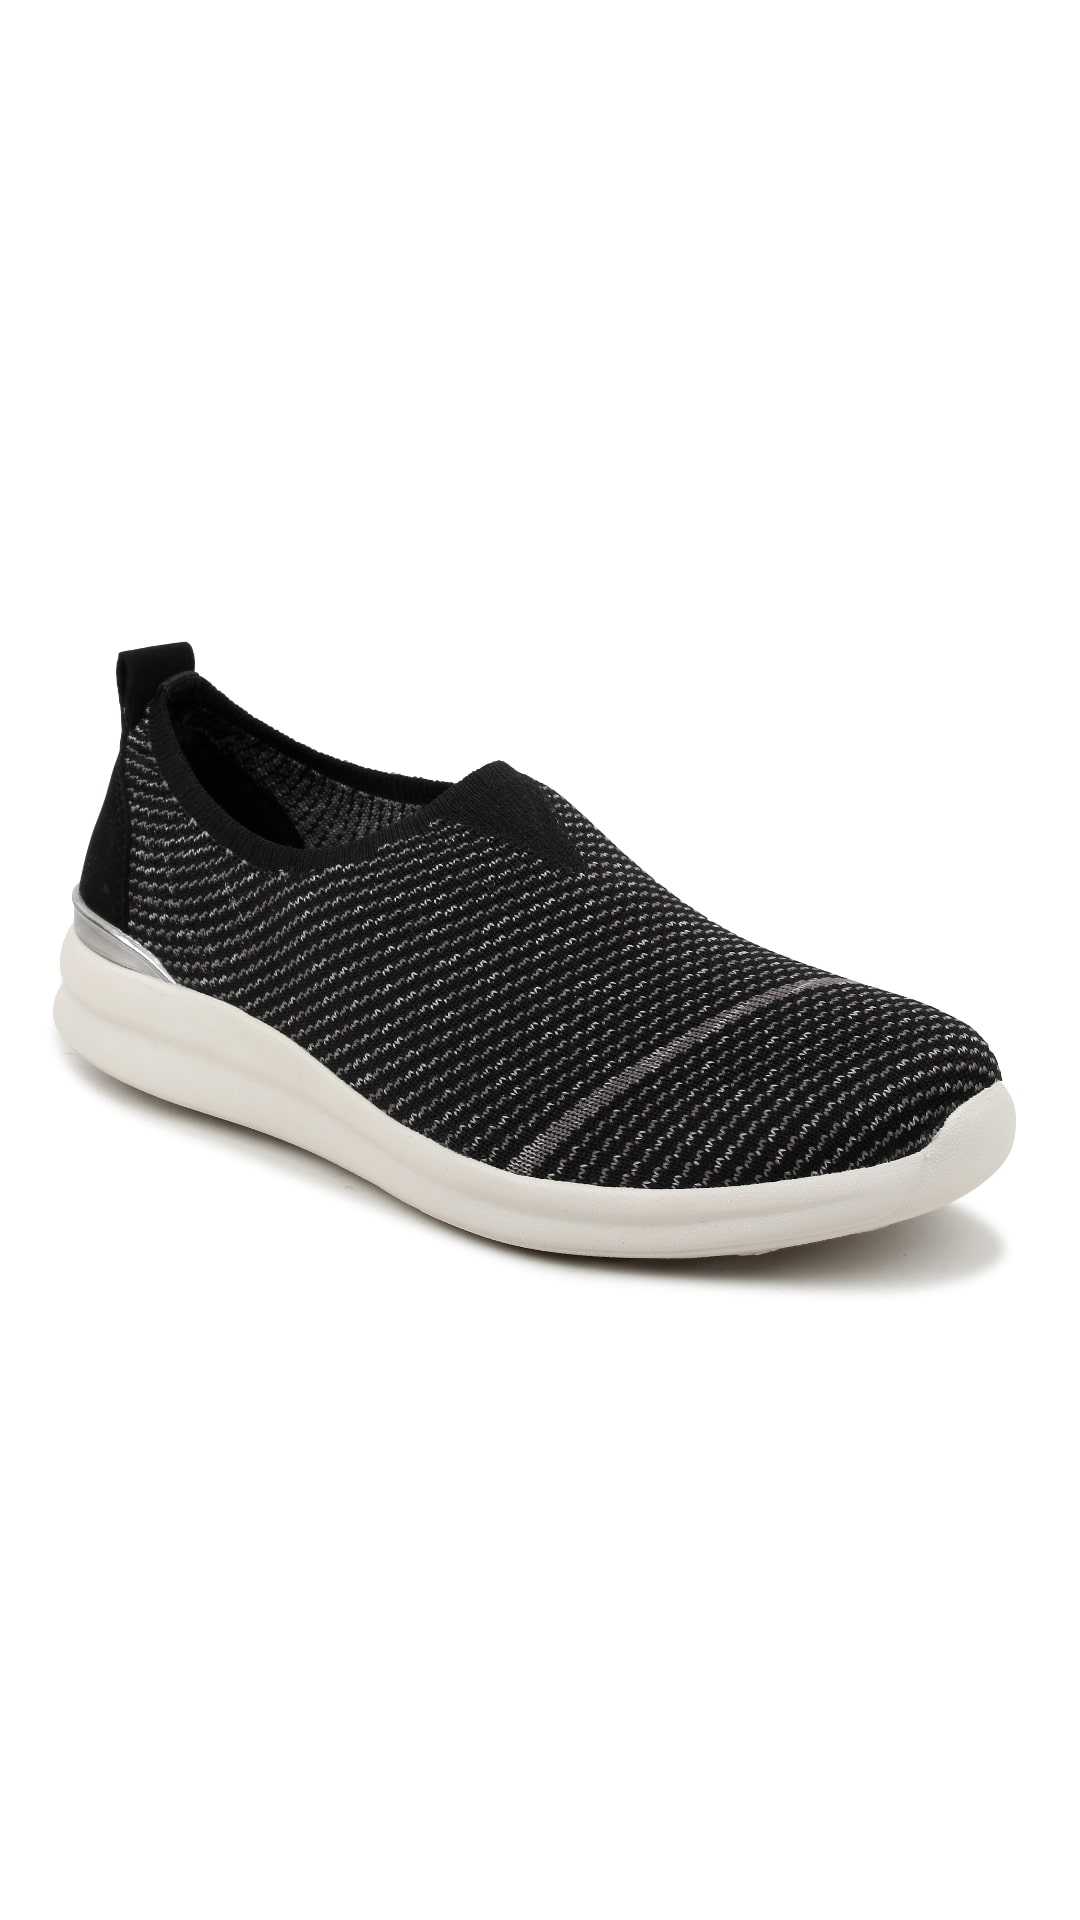 Buy Skechers BOBS PHRESHER Schuhes HOME STRETCH Casual Schuhes PHRESHER For Damens ... 68f103